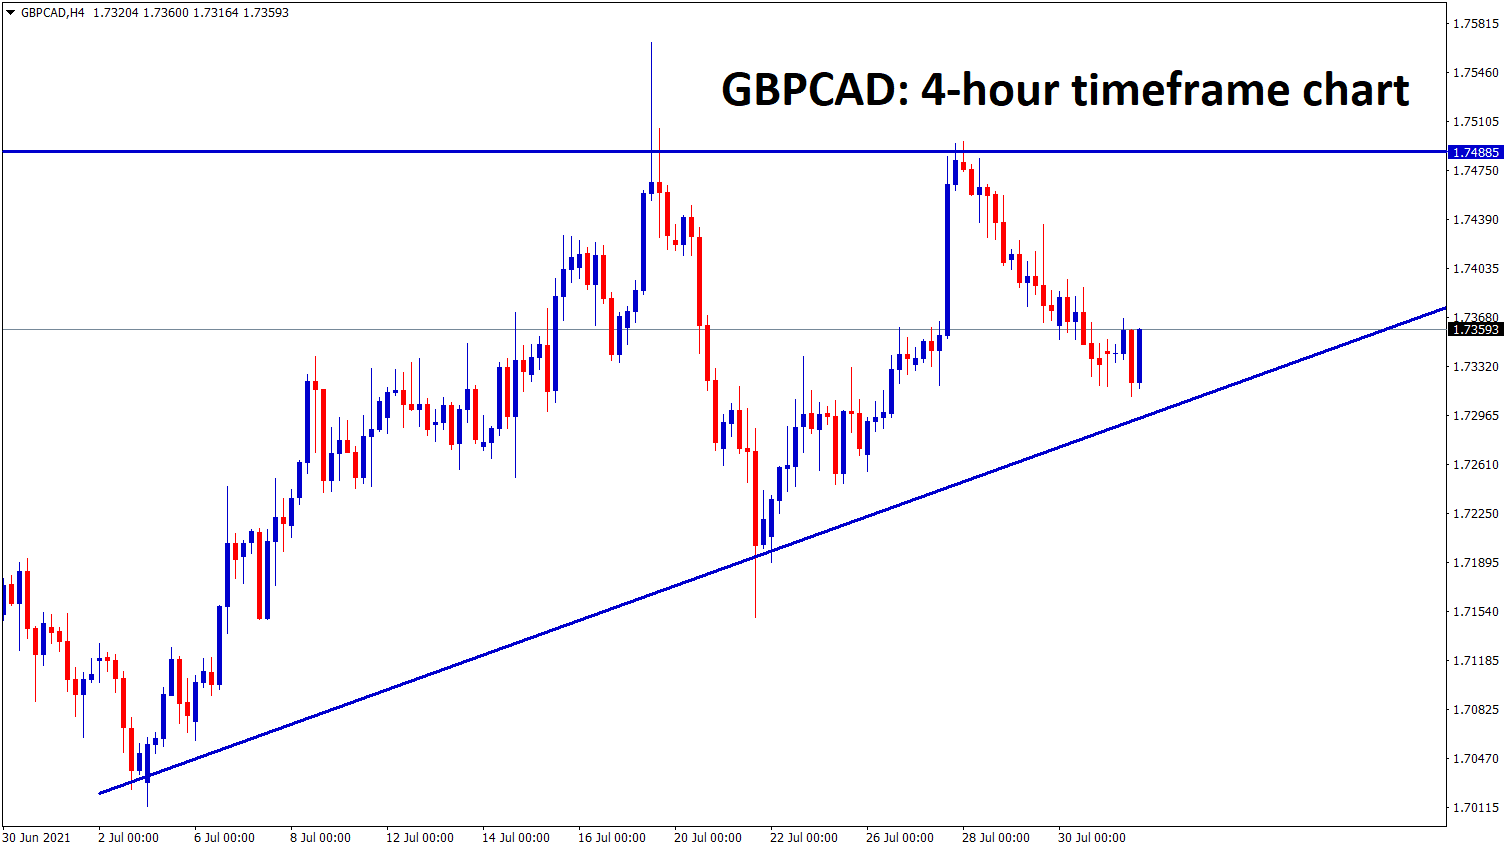 GBPCAD has formed an Ascending Triangle pattern in the h4